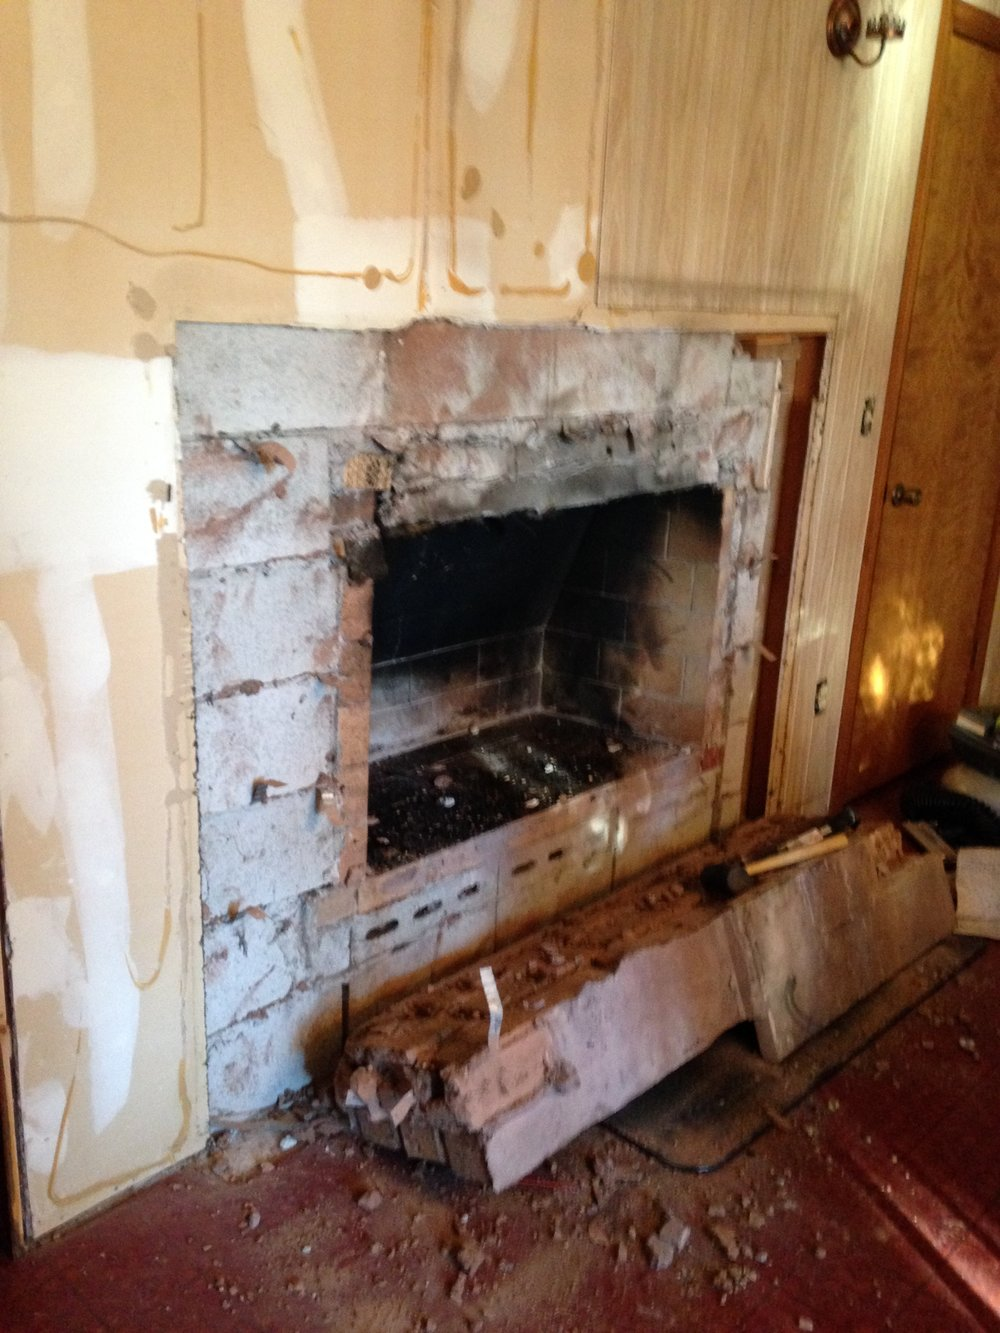 BEFORE: Dining room fireplace so old it nearly fell down looking at it.